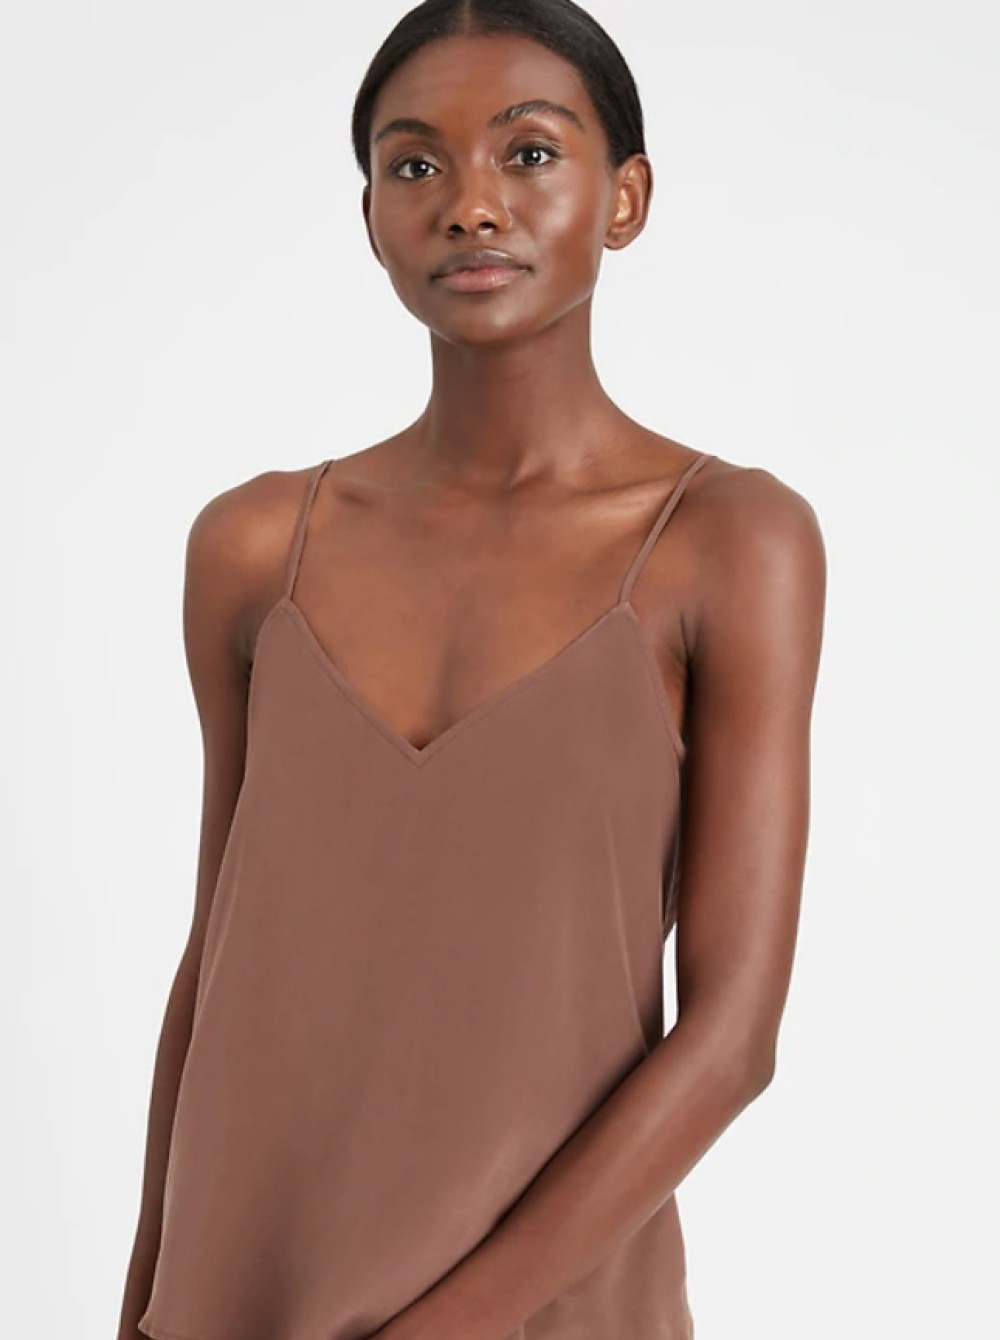 Banana Republic launched 11 skin tone-matching shades for its True Hues collection offers camisoles, pumps and other basics.